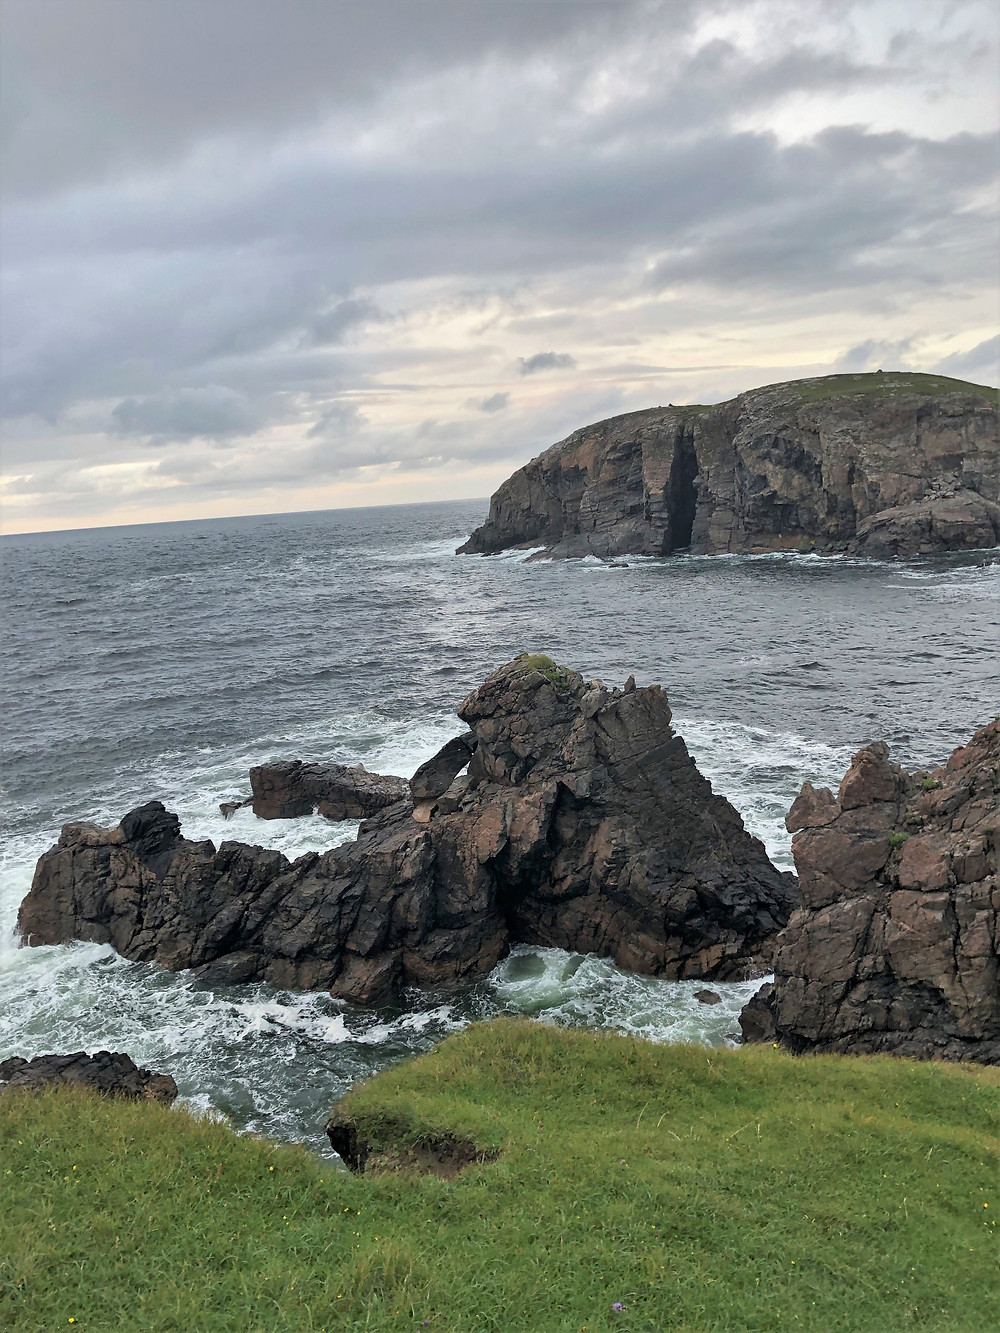 Rocky outcroppings and cliffs on Dalbeg beach in the north of Carloway on Lewis and Harris in the Outer Hebrides.